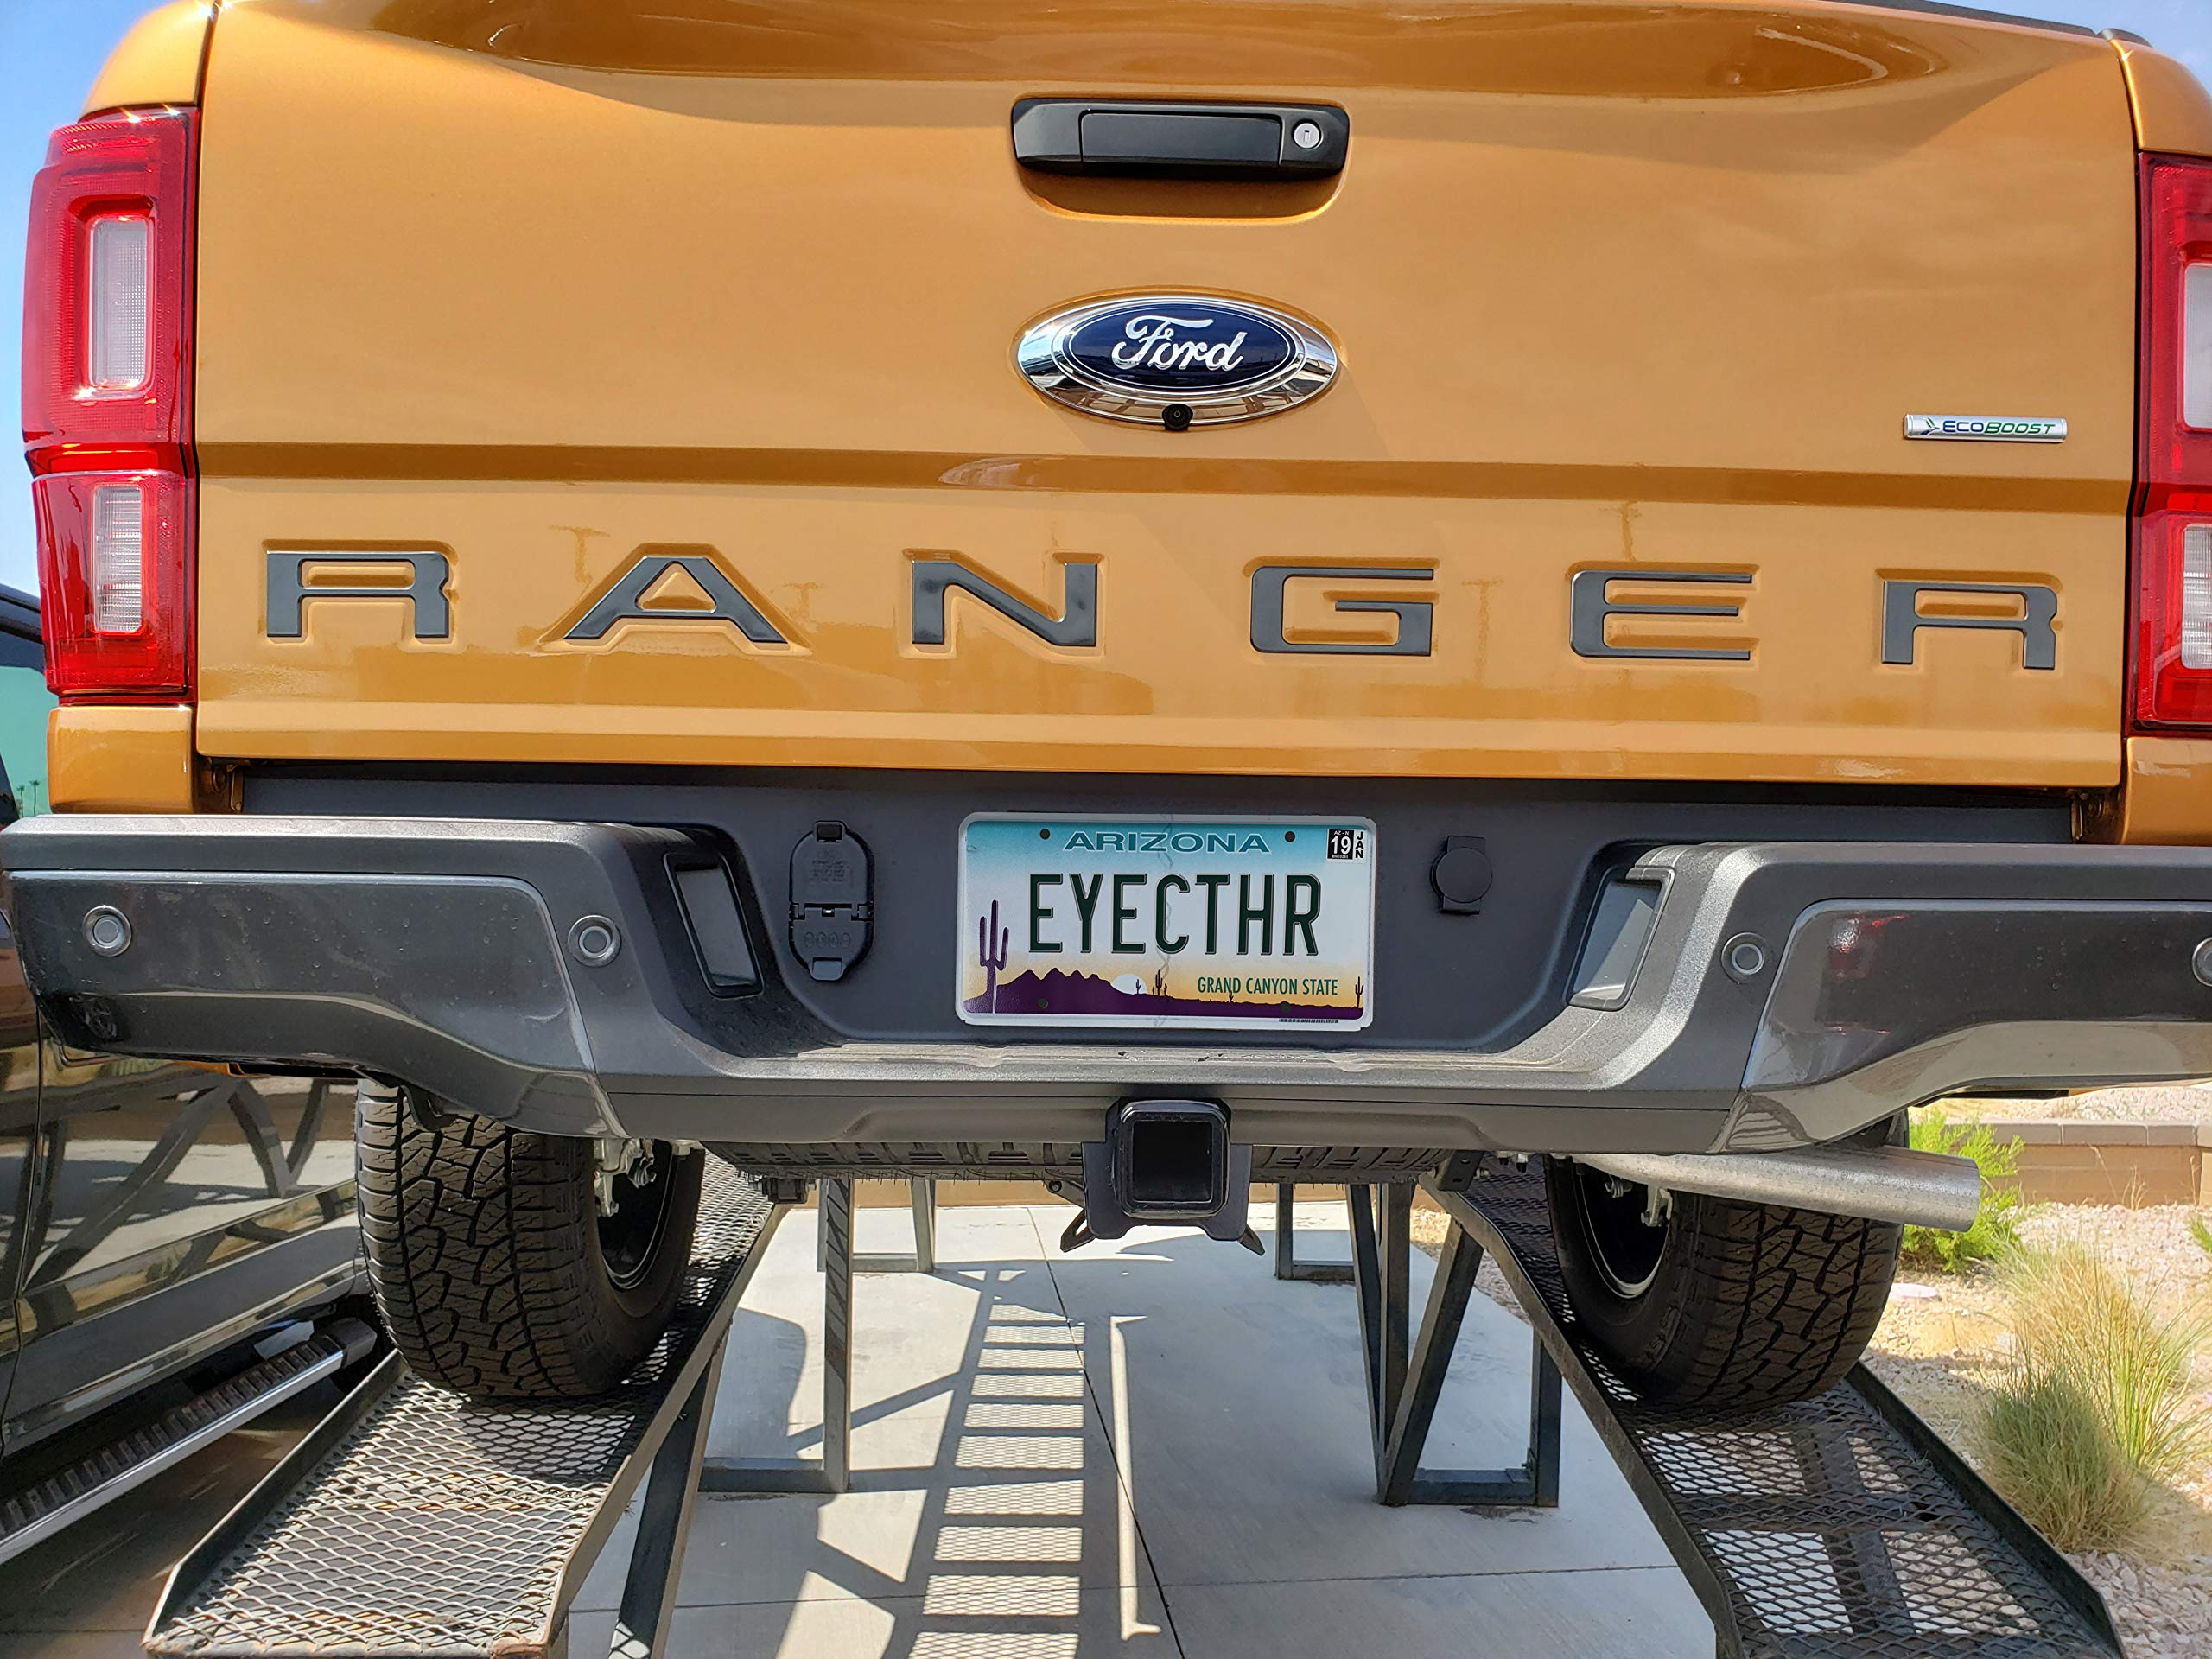 EyeCatcher Tailgate Insert Letters fits 2019-2020 Ford Ranger Red